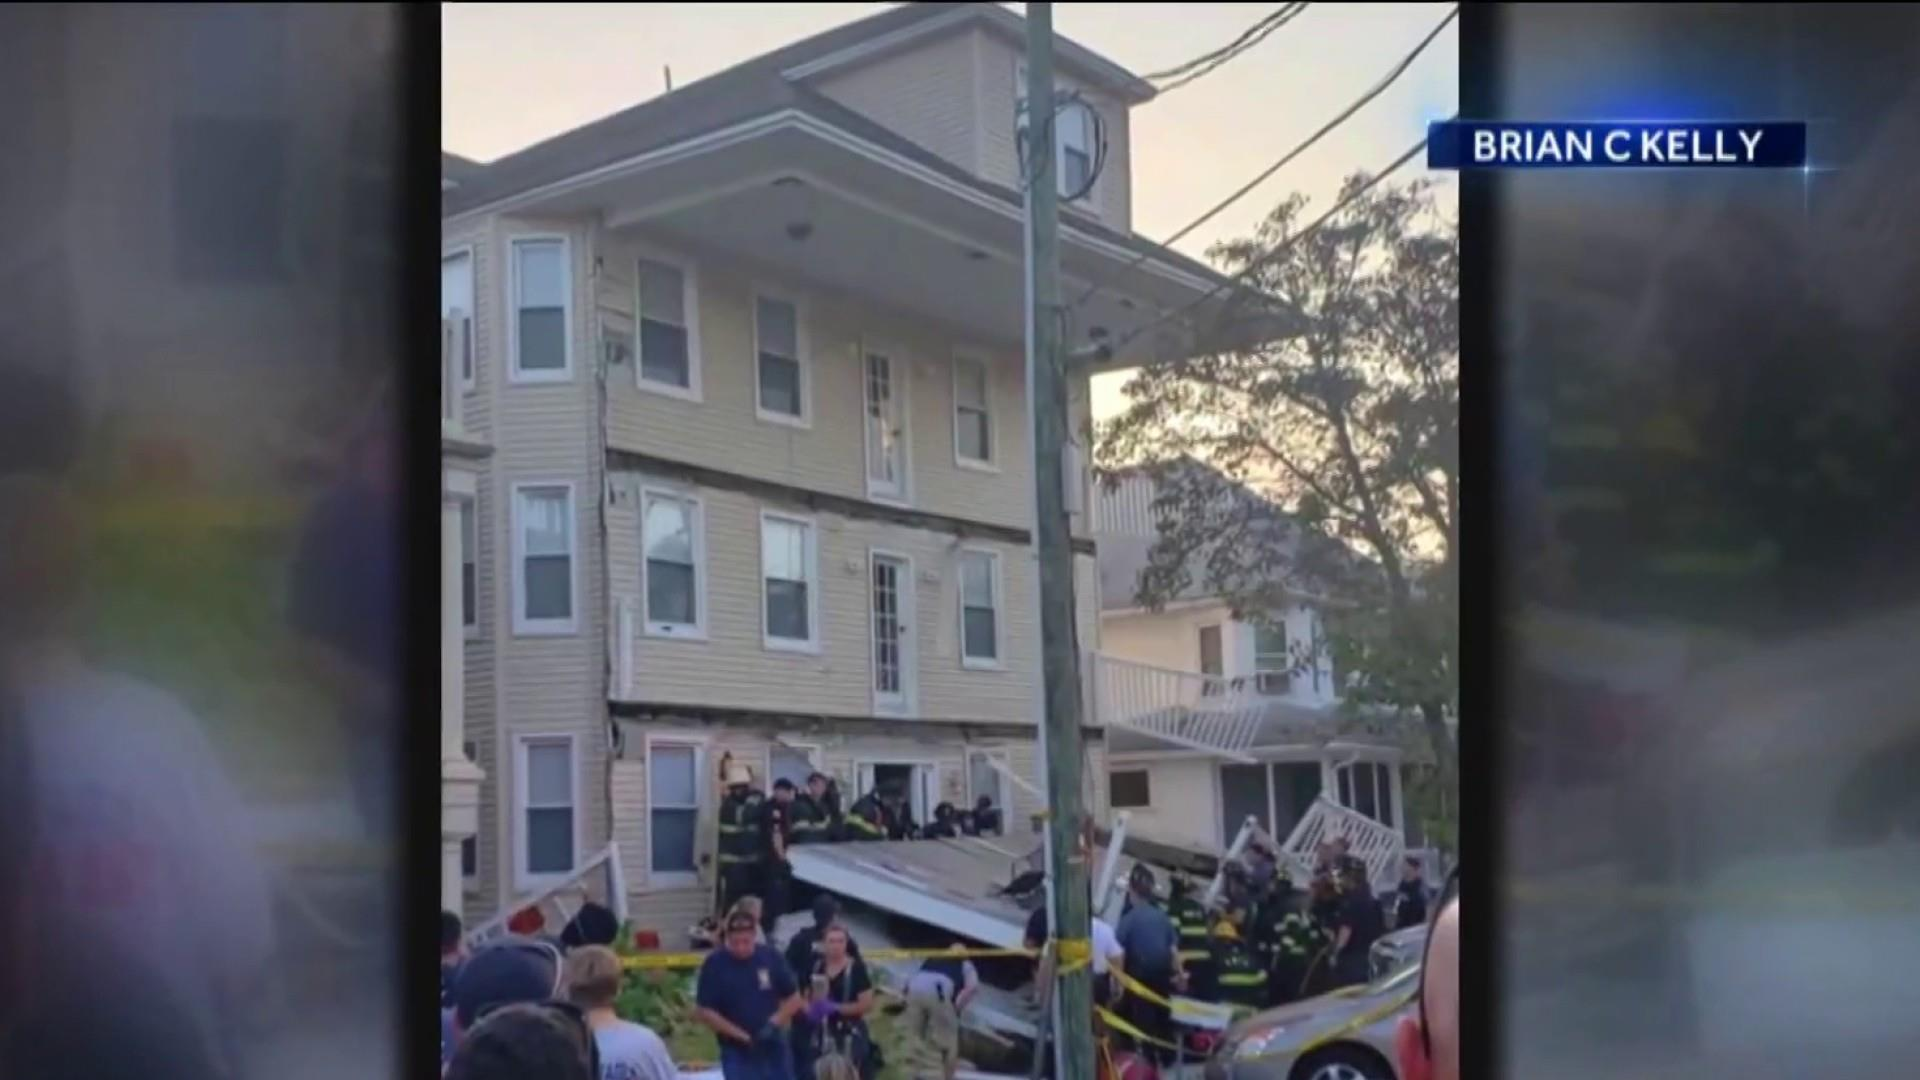 At least 21 injured when decks collapse during New Jersey firefighter event